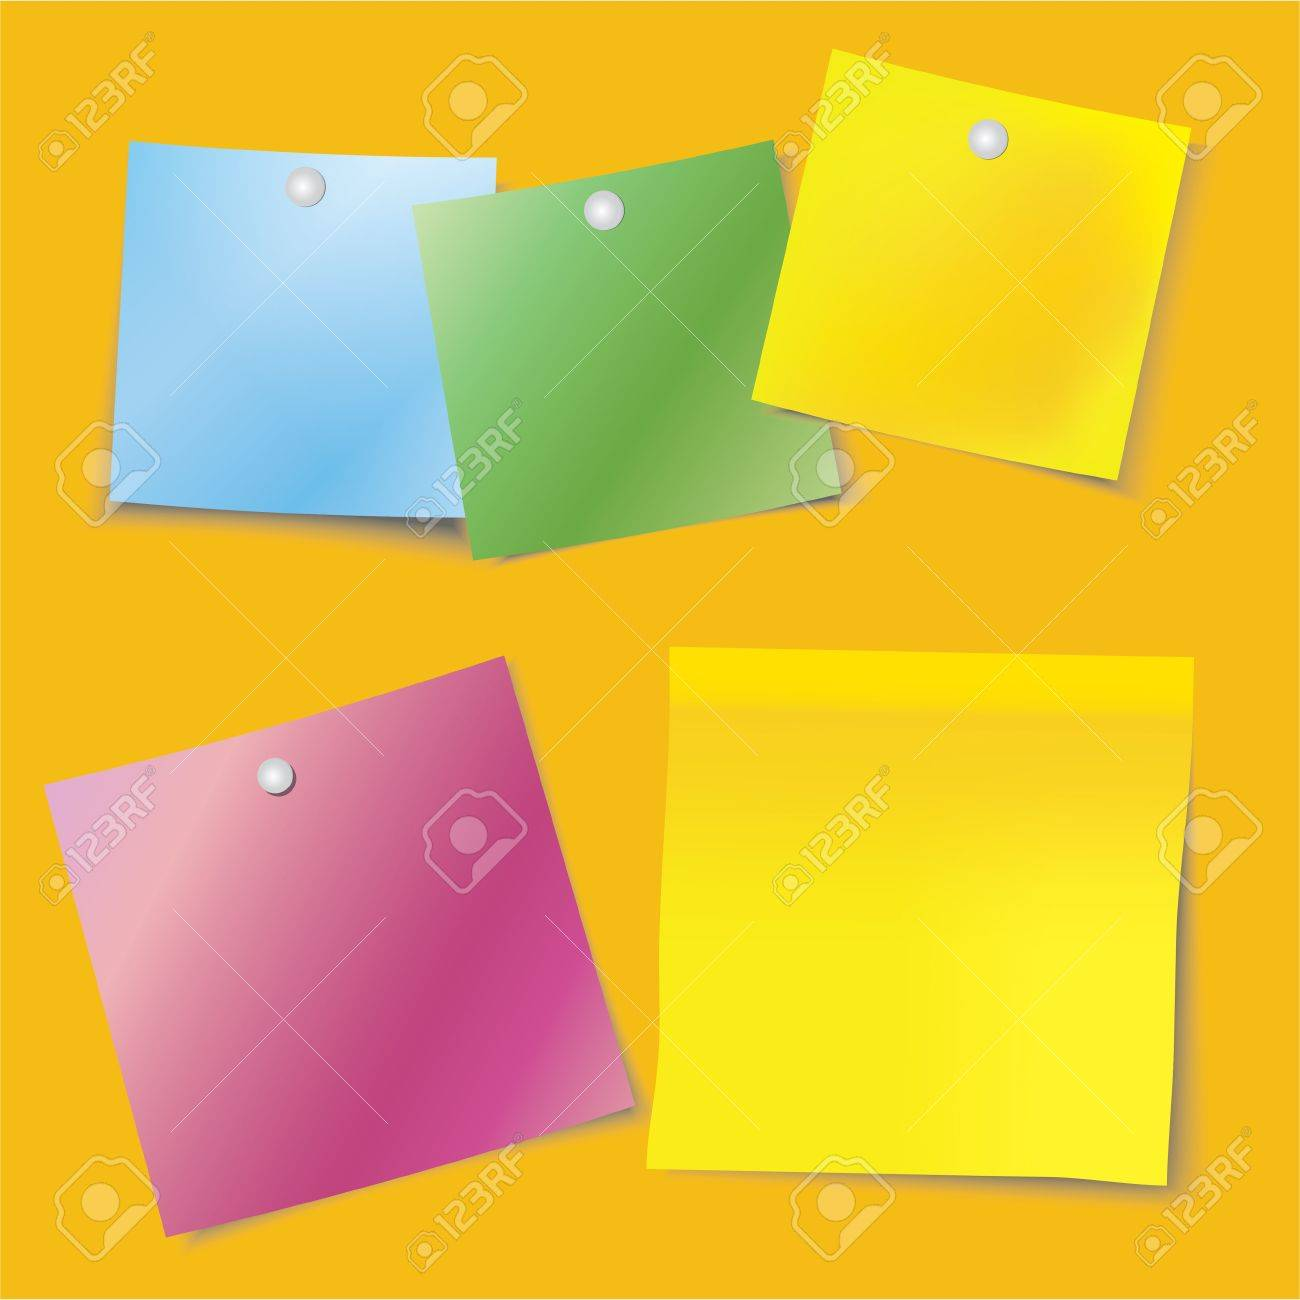 Colour Sheets Of The Notebook Pinned To The Orange Board Royalty ...